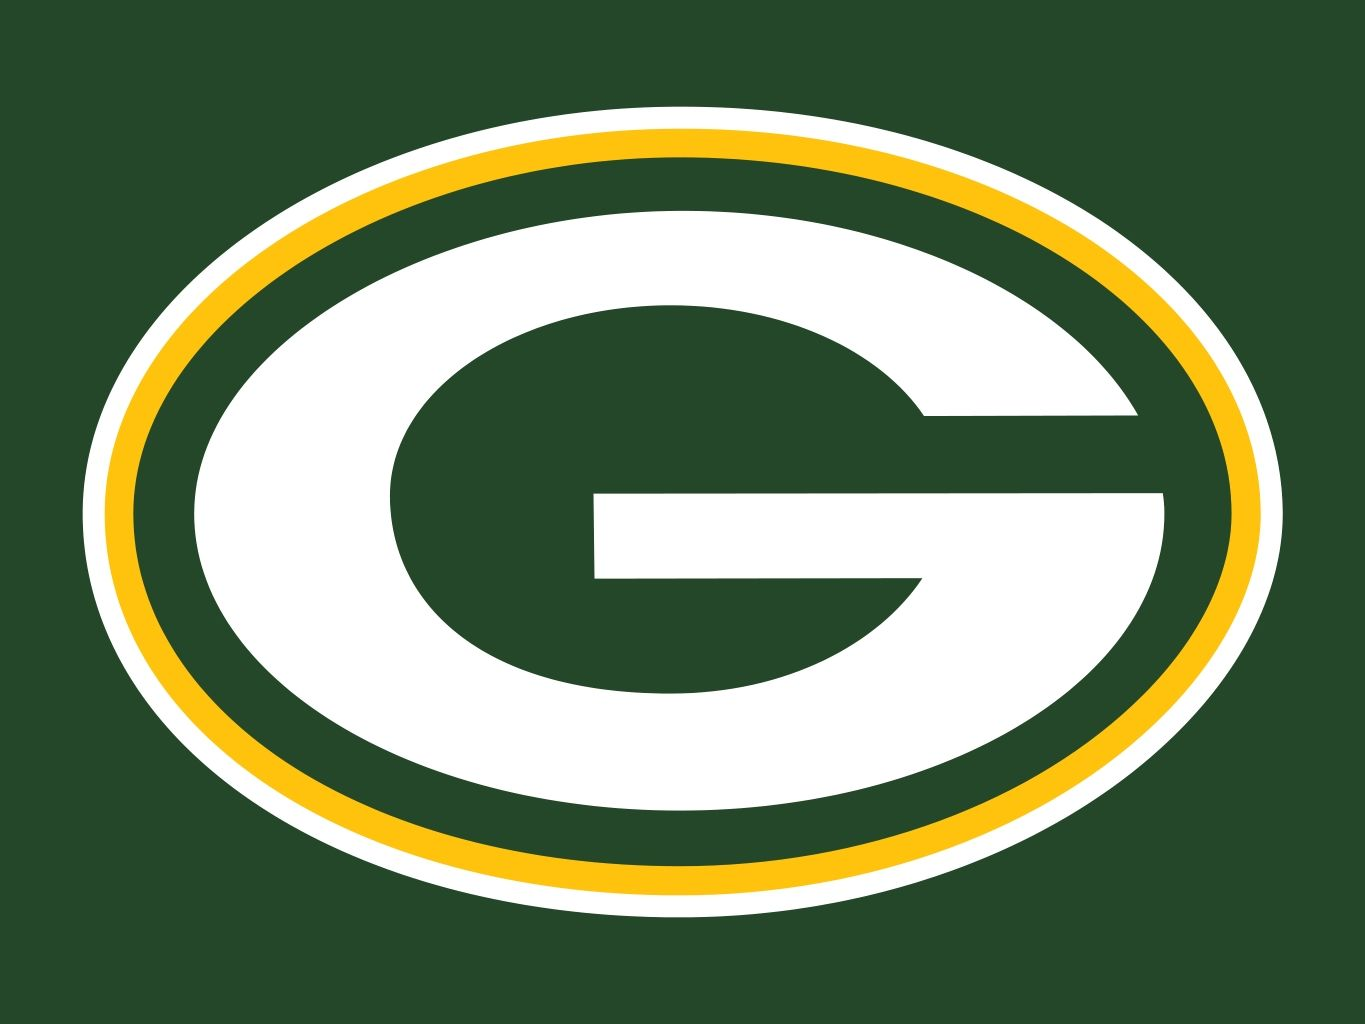 Green bay packer clipart free vector transparent library Collection of Green bay clipart | Free download best Green bay ... vector transparent library